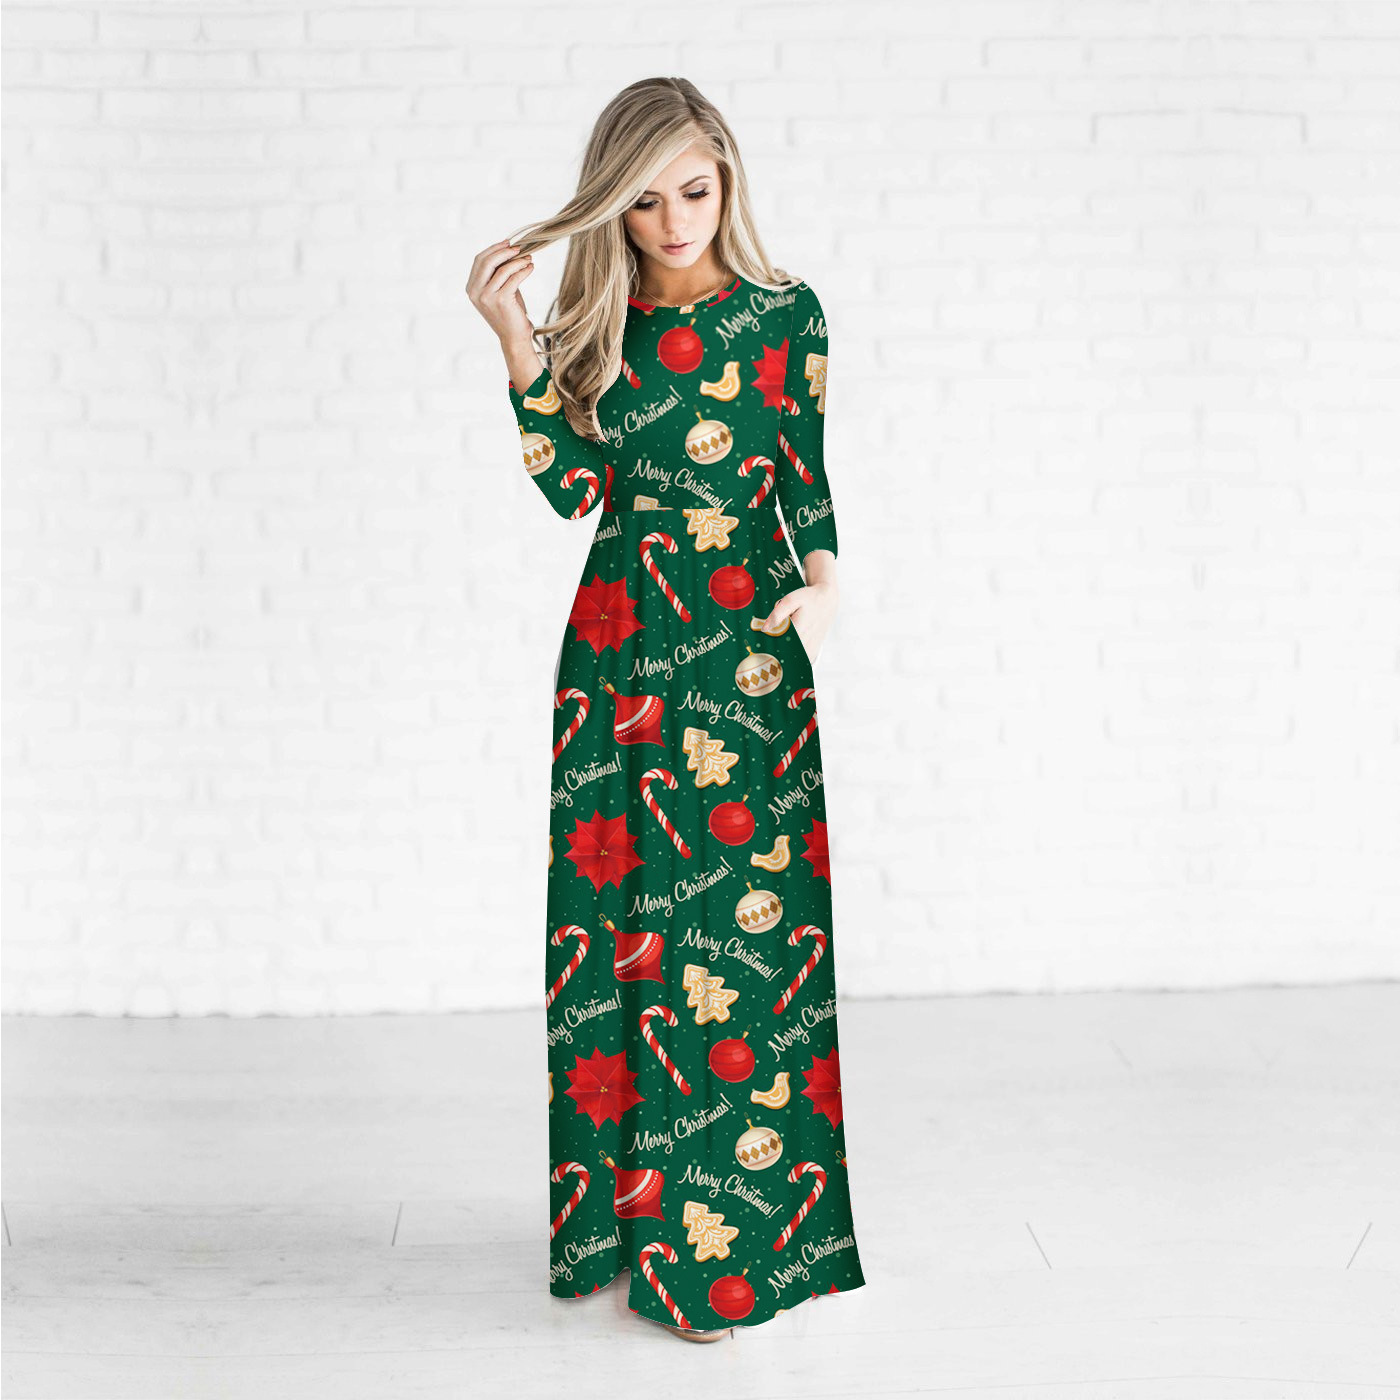 Fashion design clothes novelty d christmas gift